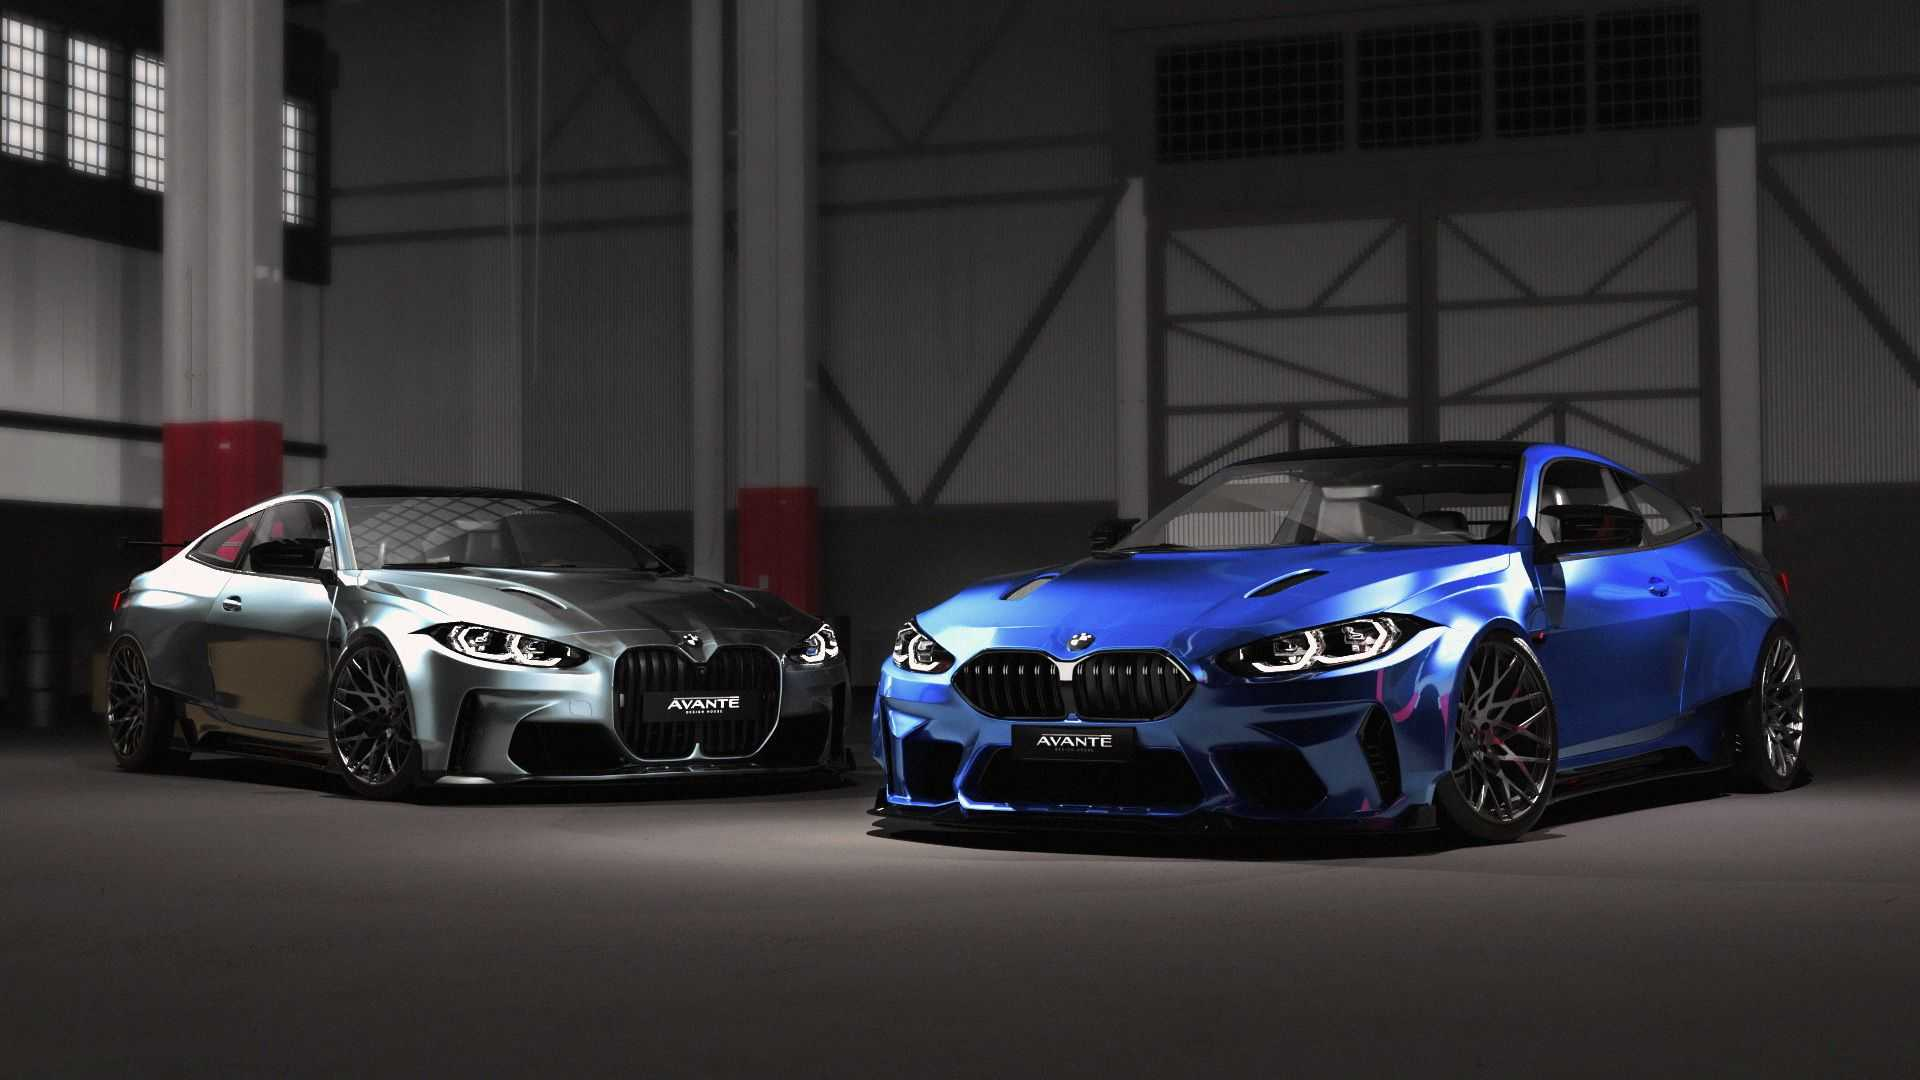 2021 BMW M4 Coupe With Widebody Kit Has Thick Hips And Less Grille